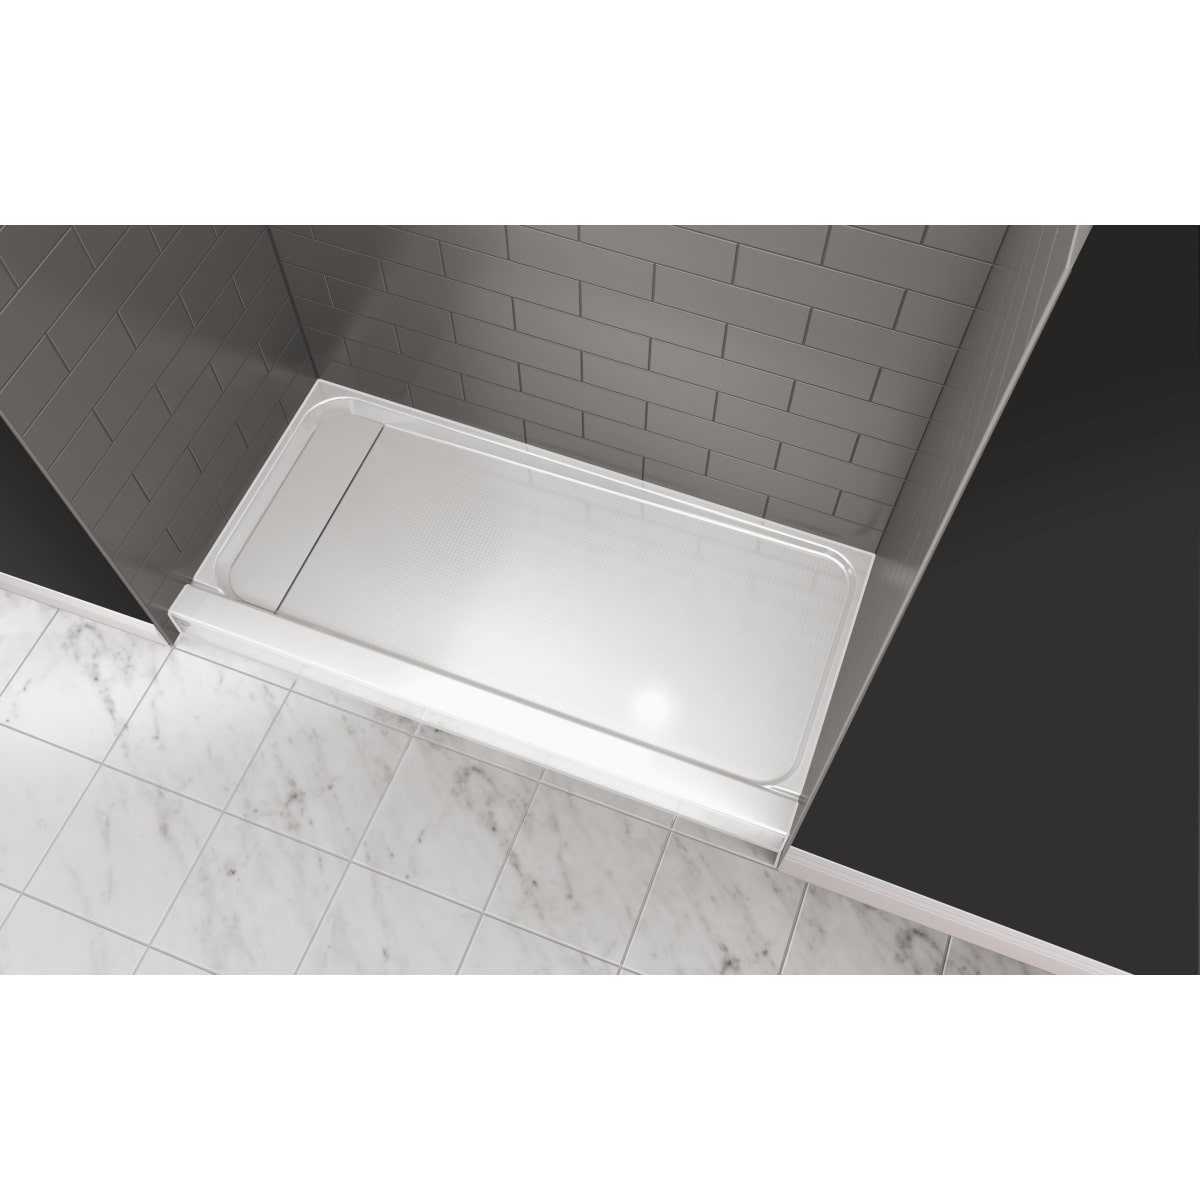 """Jacuzzi Catalina™ 60"""" X 30"""" Rectangular Shower Pan with Single, Low-Barrier Threshold with Left Drain"""